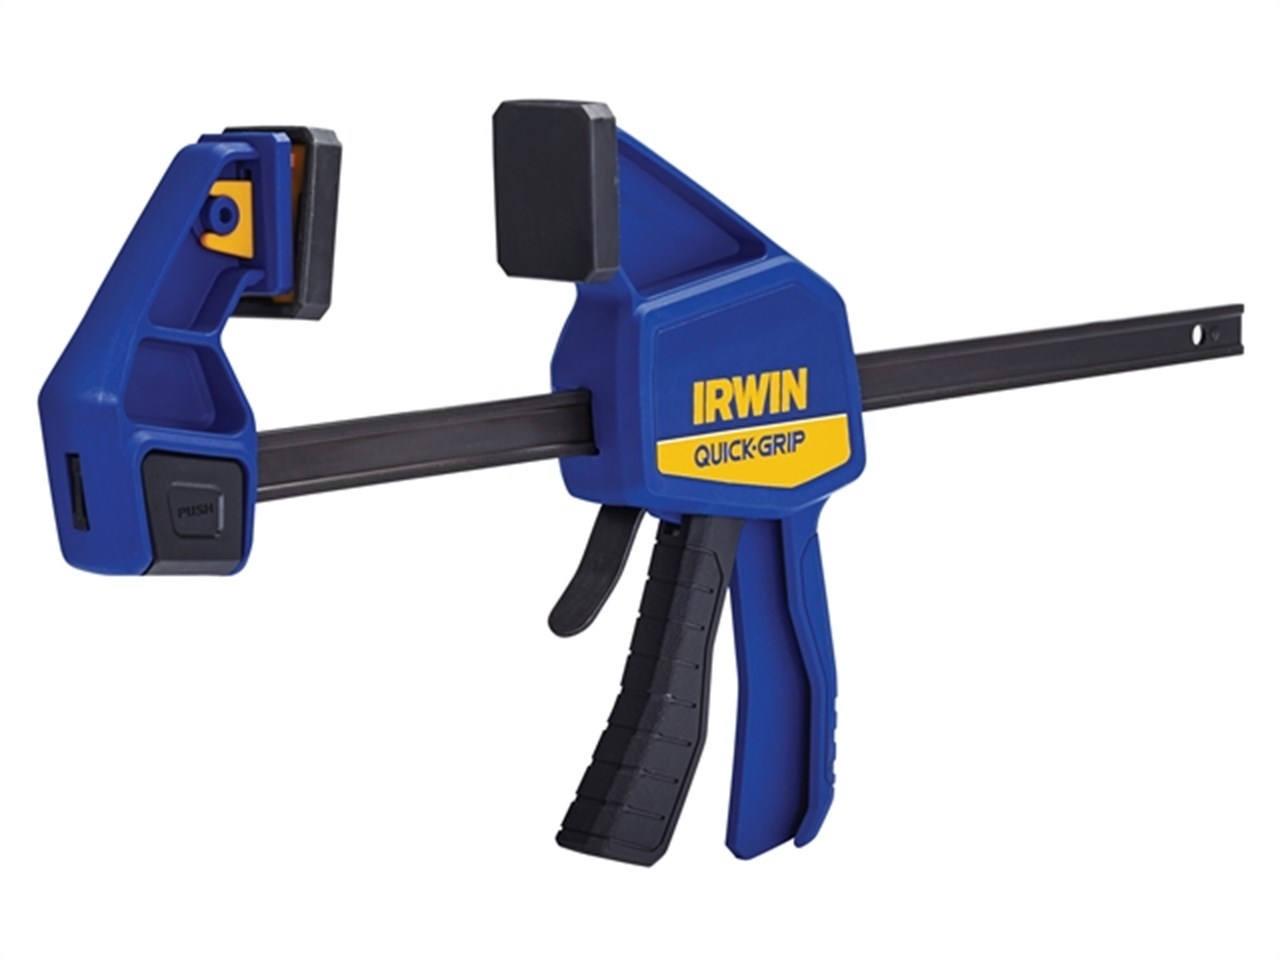 Irwin Quick Grip Clamps